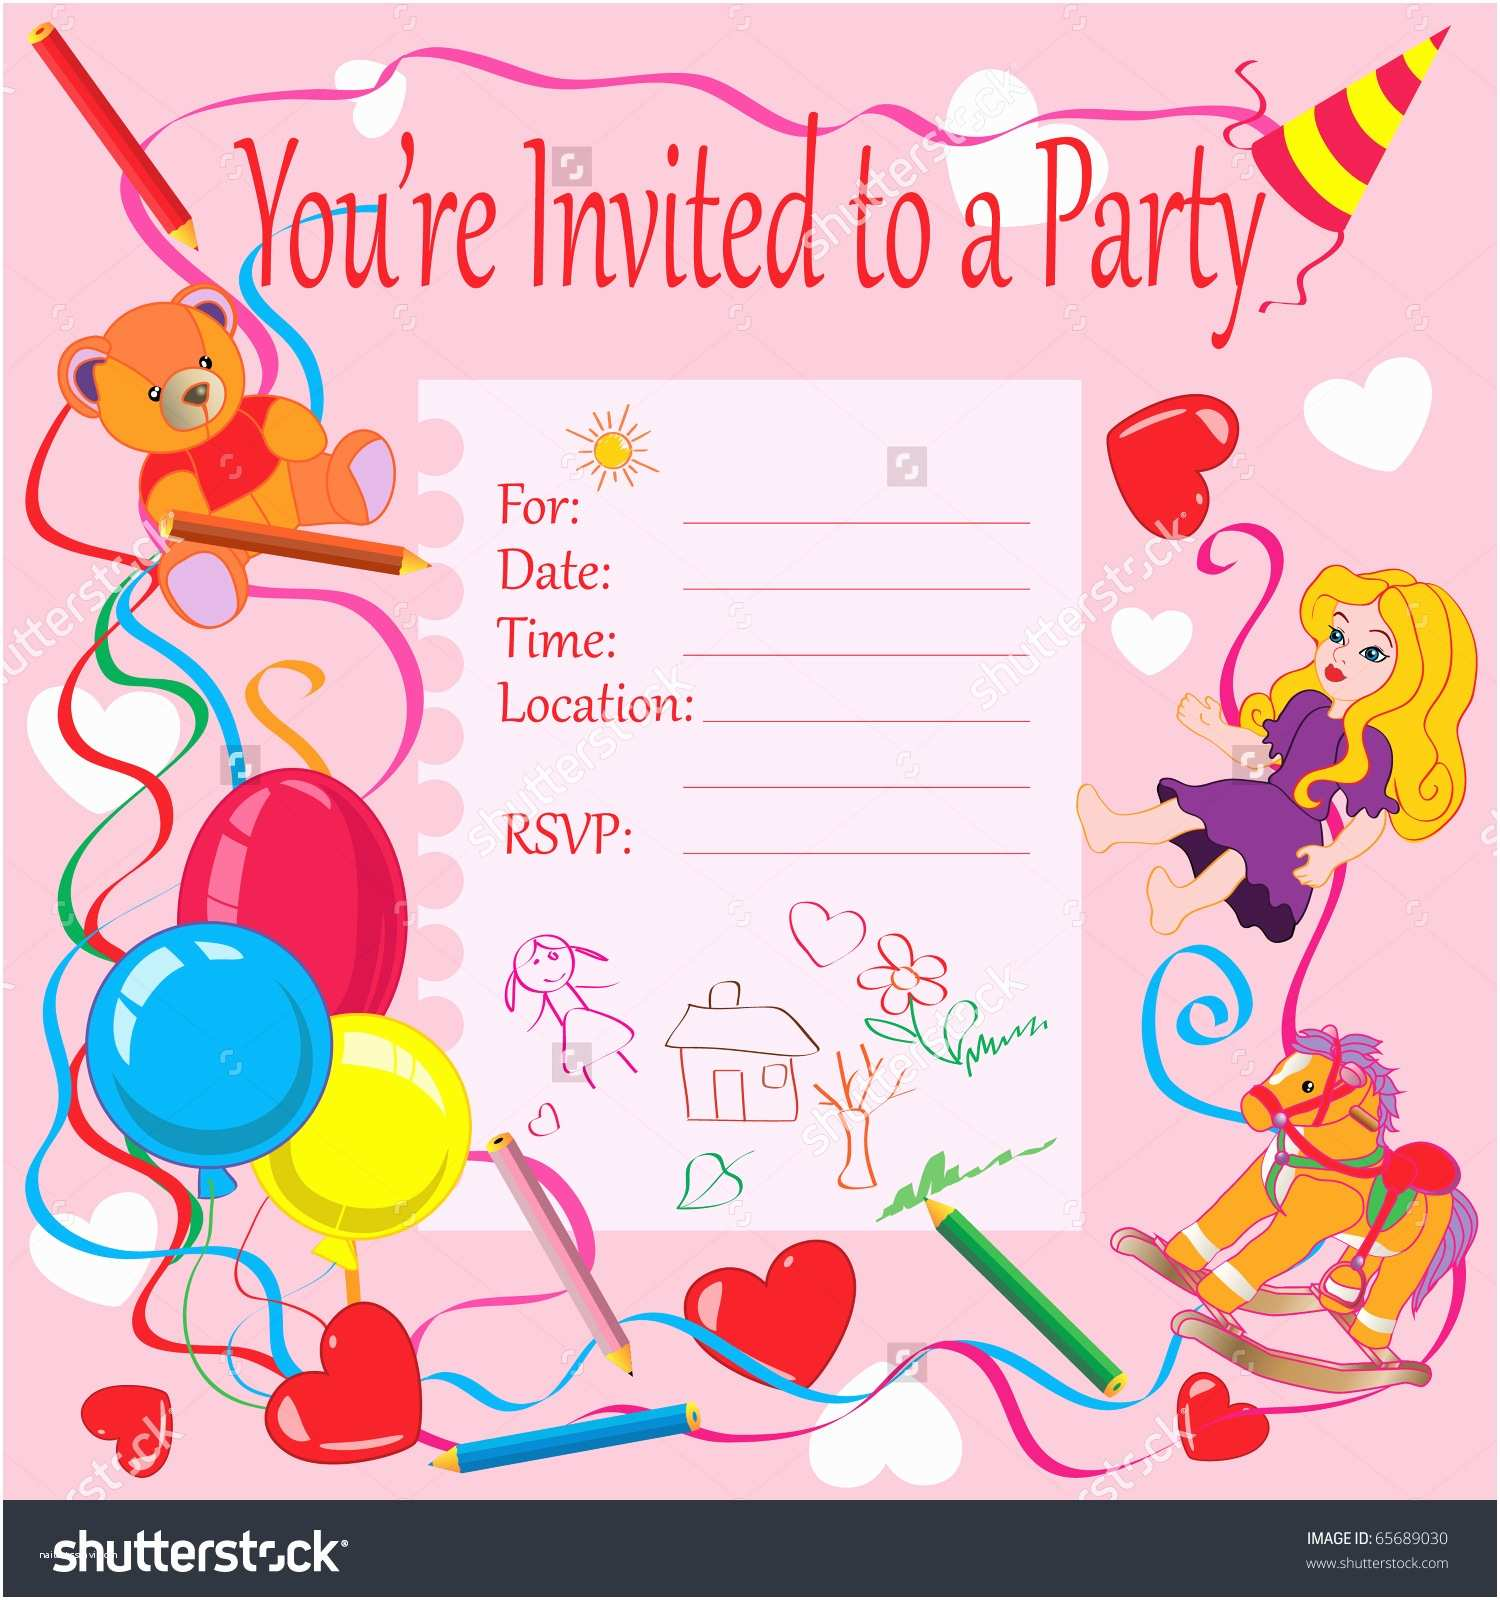 Design Your Own Birthday Invitations top 9 Birthday Party Invitations for Kids